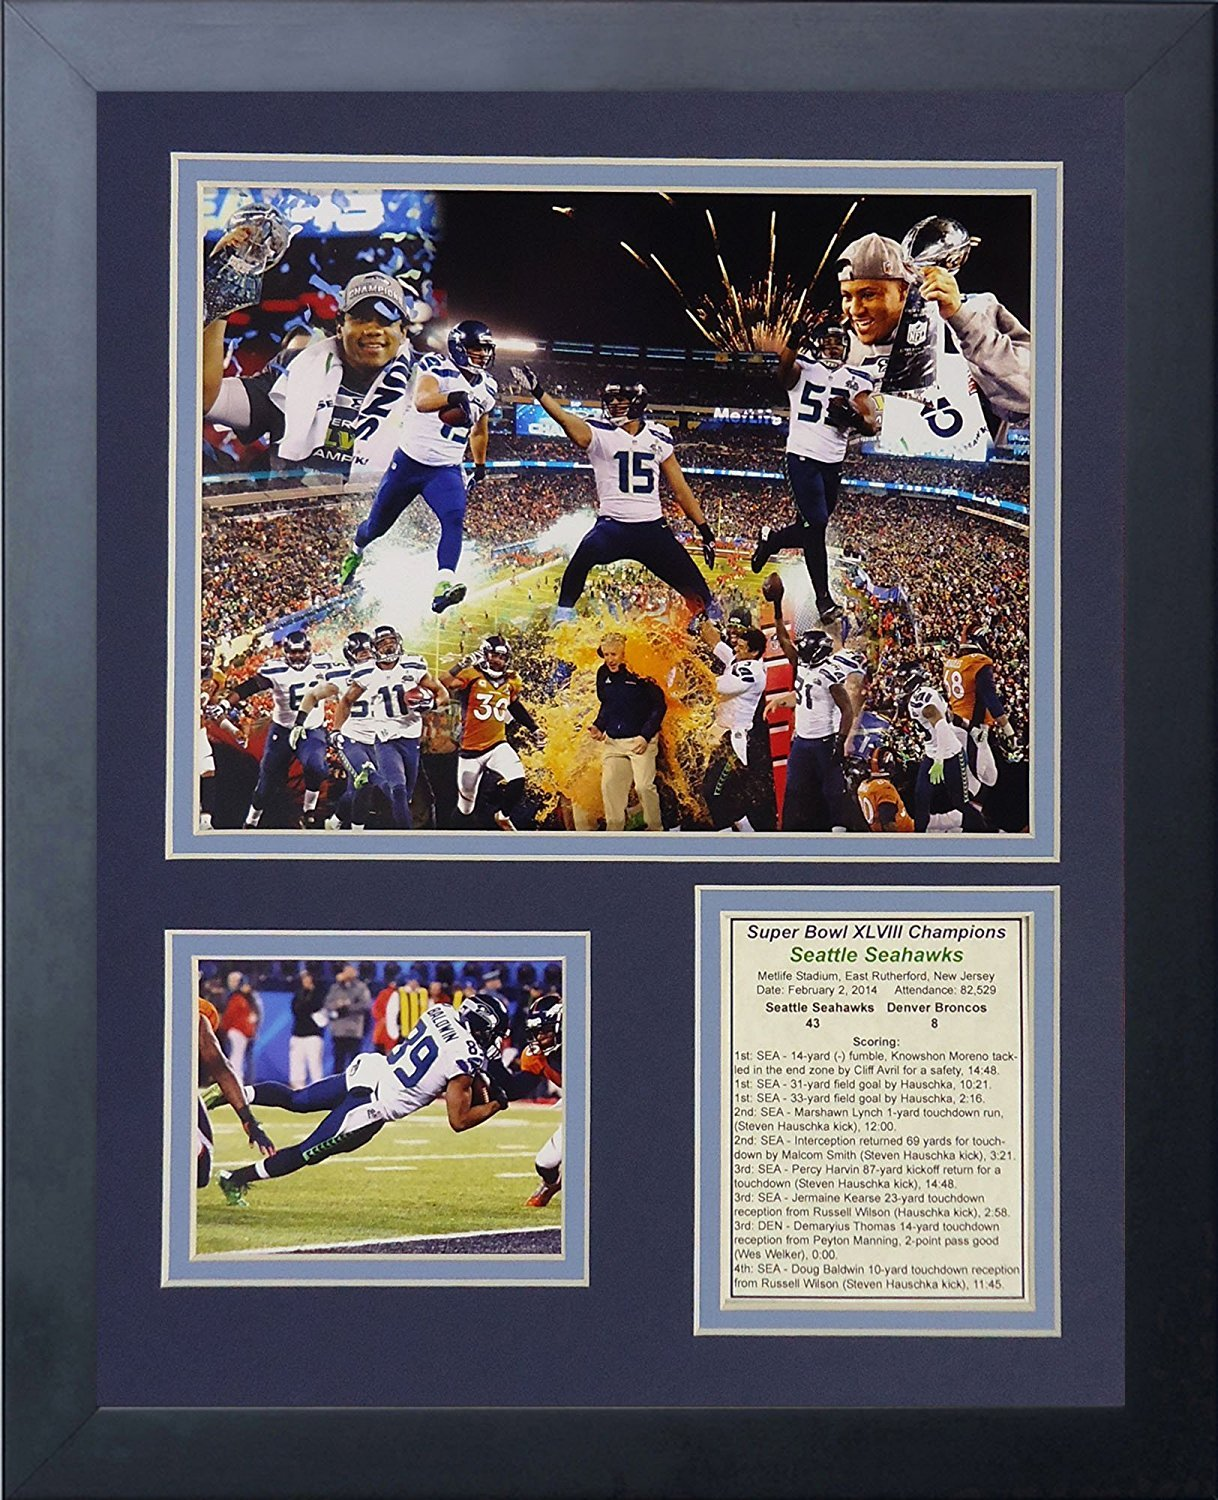 Legends Never Die 2014 Seattle Seahawks Super Bowl XLVIII Champions Framed Photo Collage, 11x14-Inch 46974U